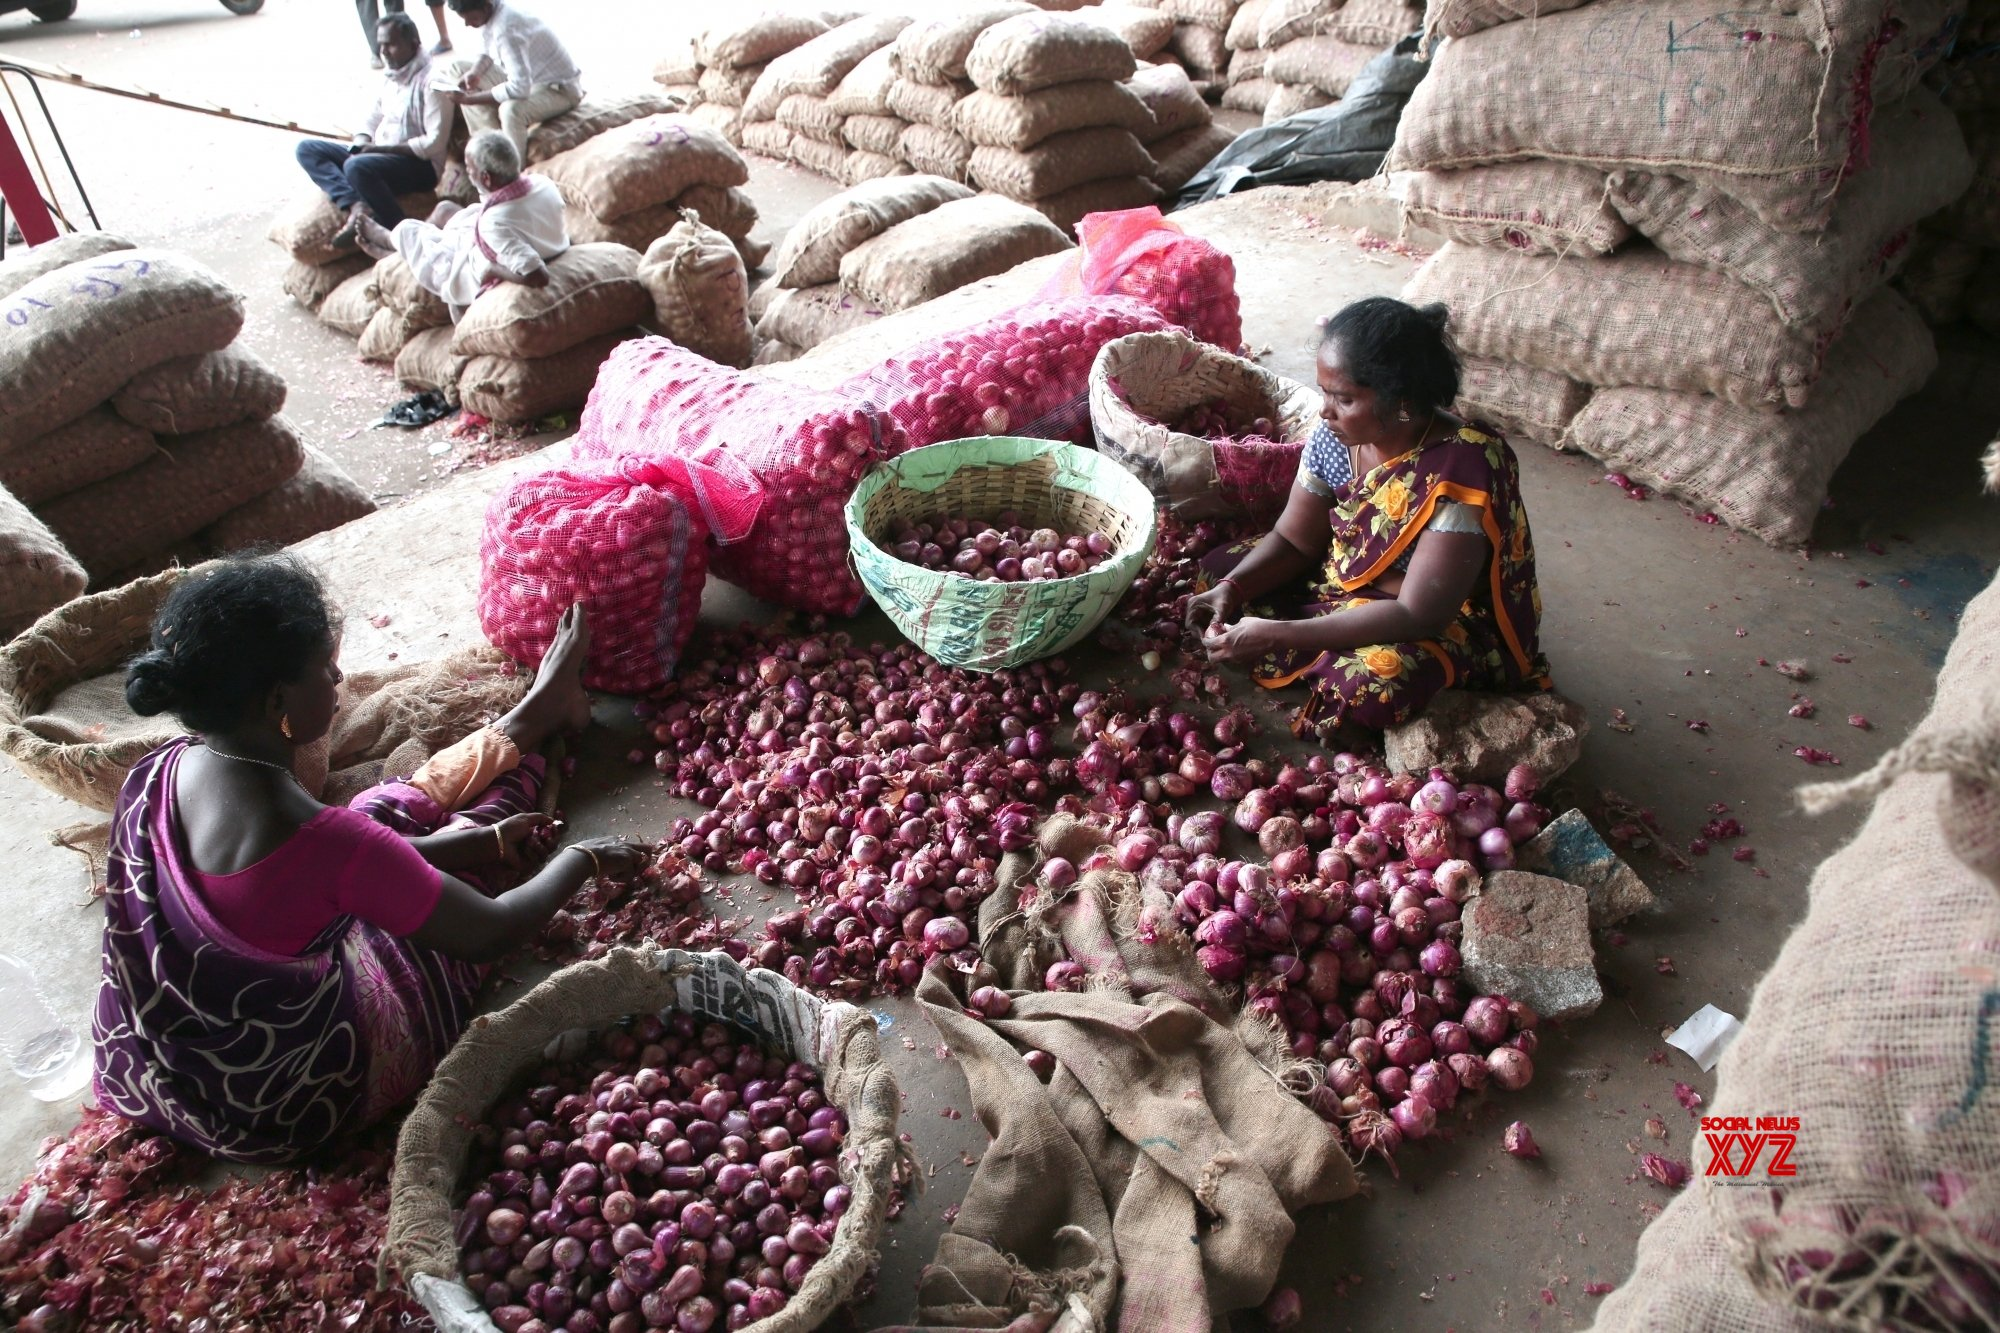 Govt cuts onion stockholding by 50% to check hoarding